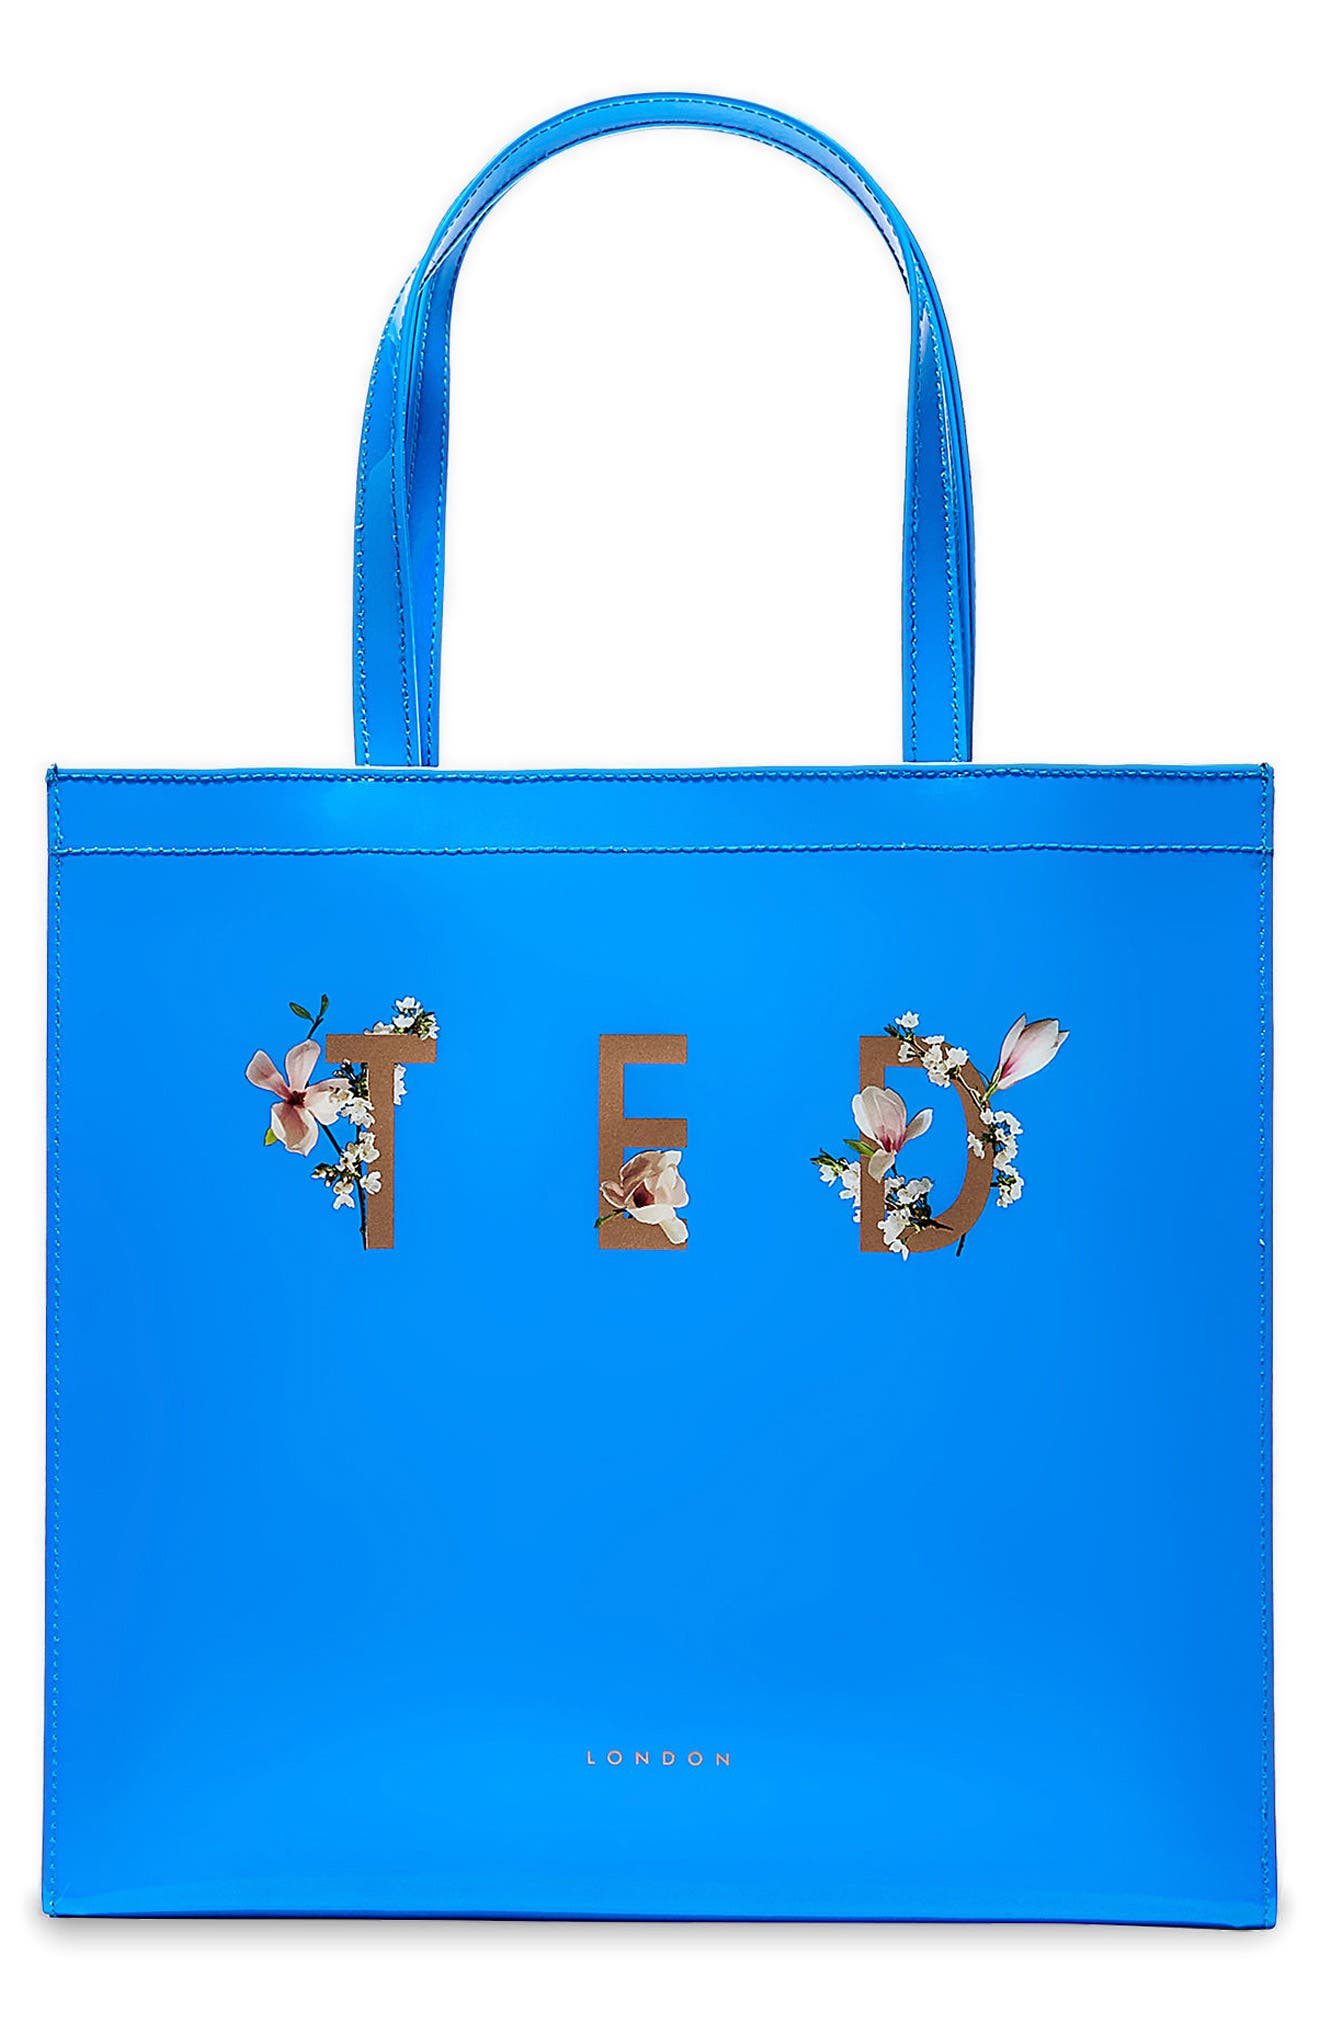 Theacon Large Icon Tote,                             Main thumbnail 1, color,                             430